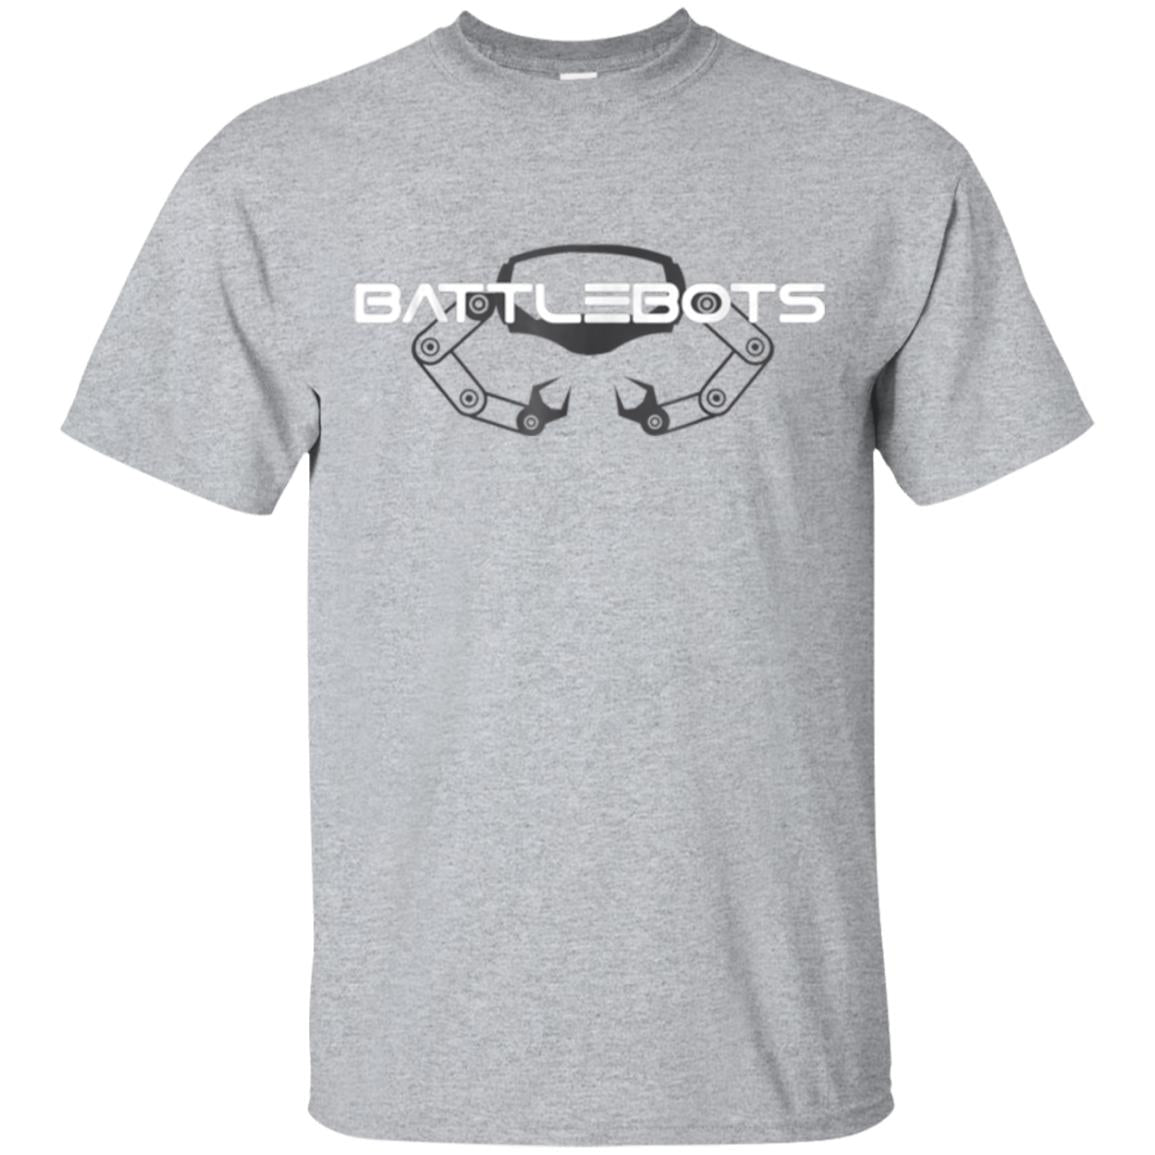 Battlebot shirt. Battle bot t-shirt robot wars robotic arm 99promocode